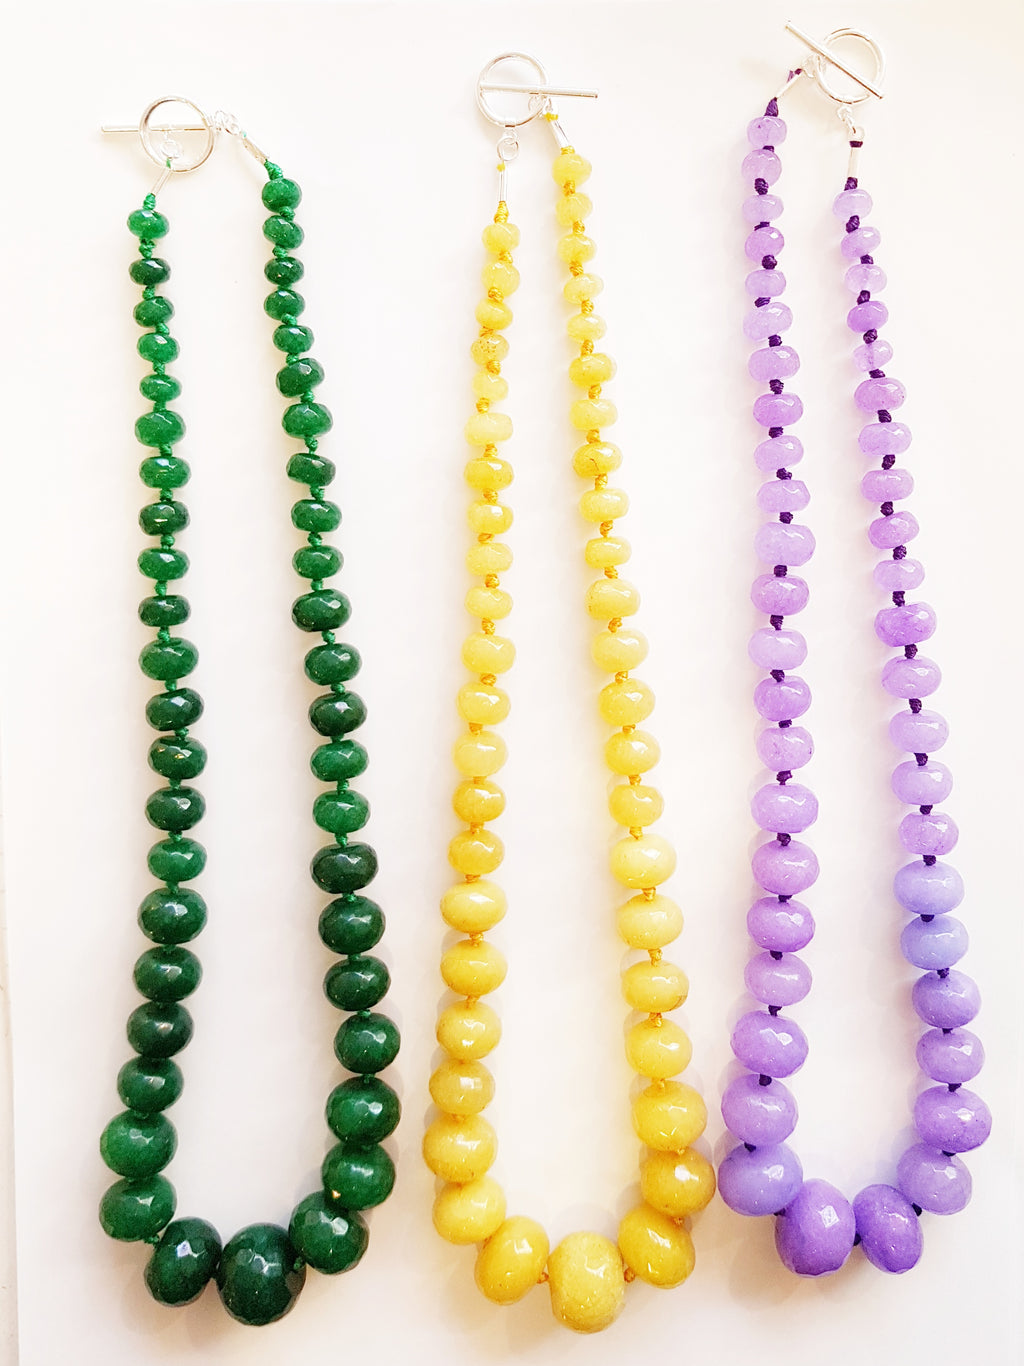 Brighly coloured dyed jade chunky beaded necklaces.